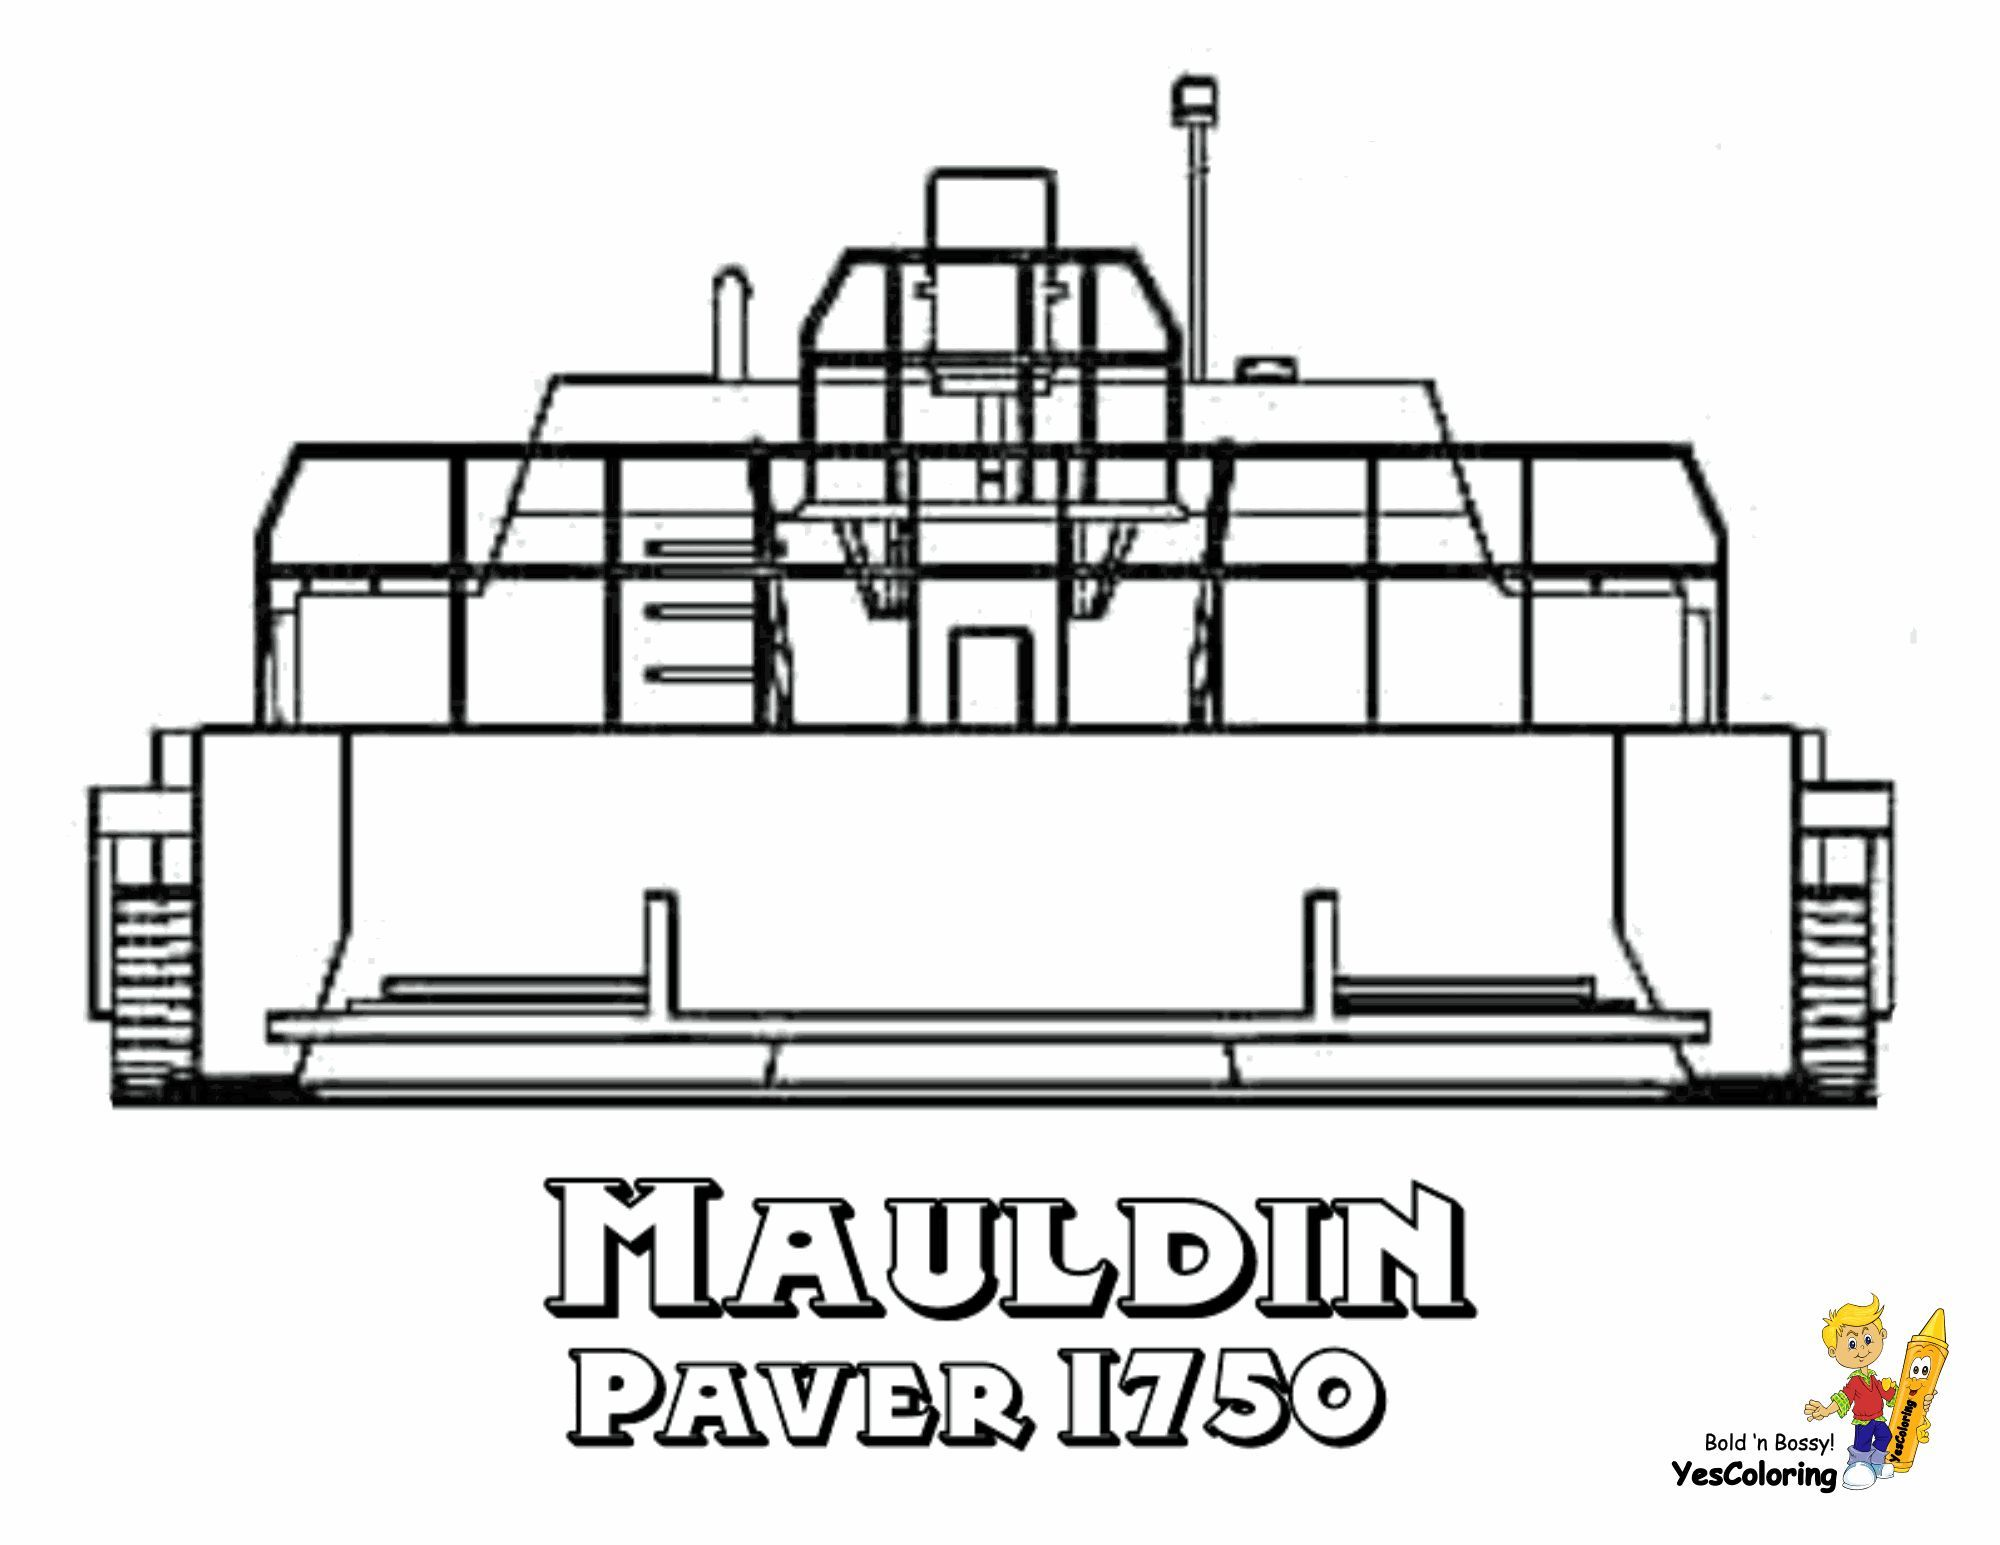 Print Out This Cool Highway Construction Vehicles! Mauldin